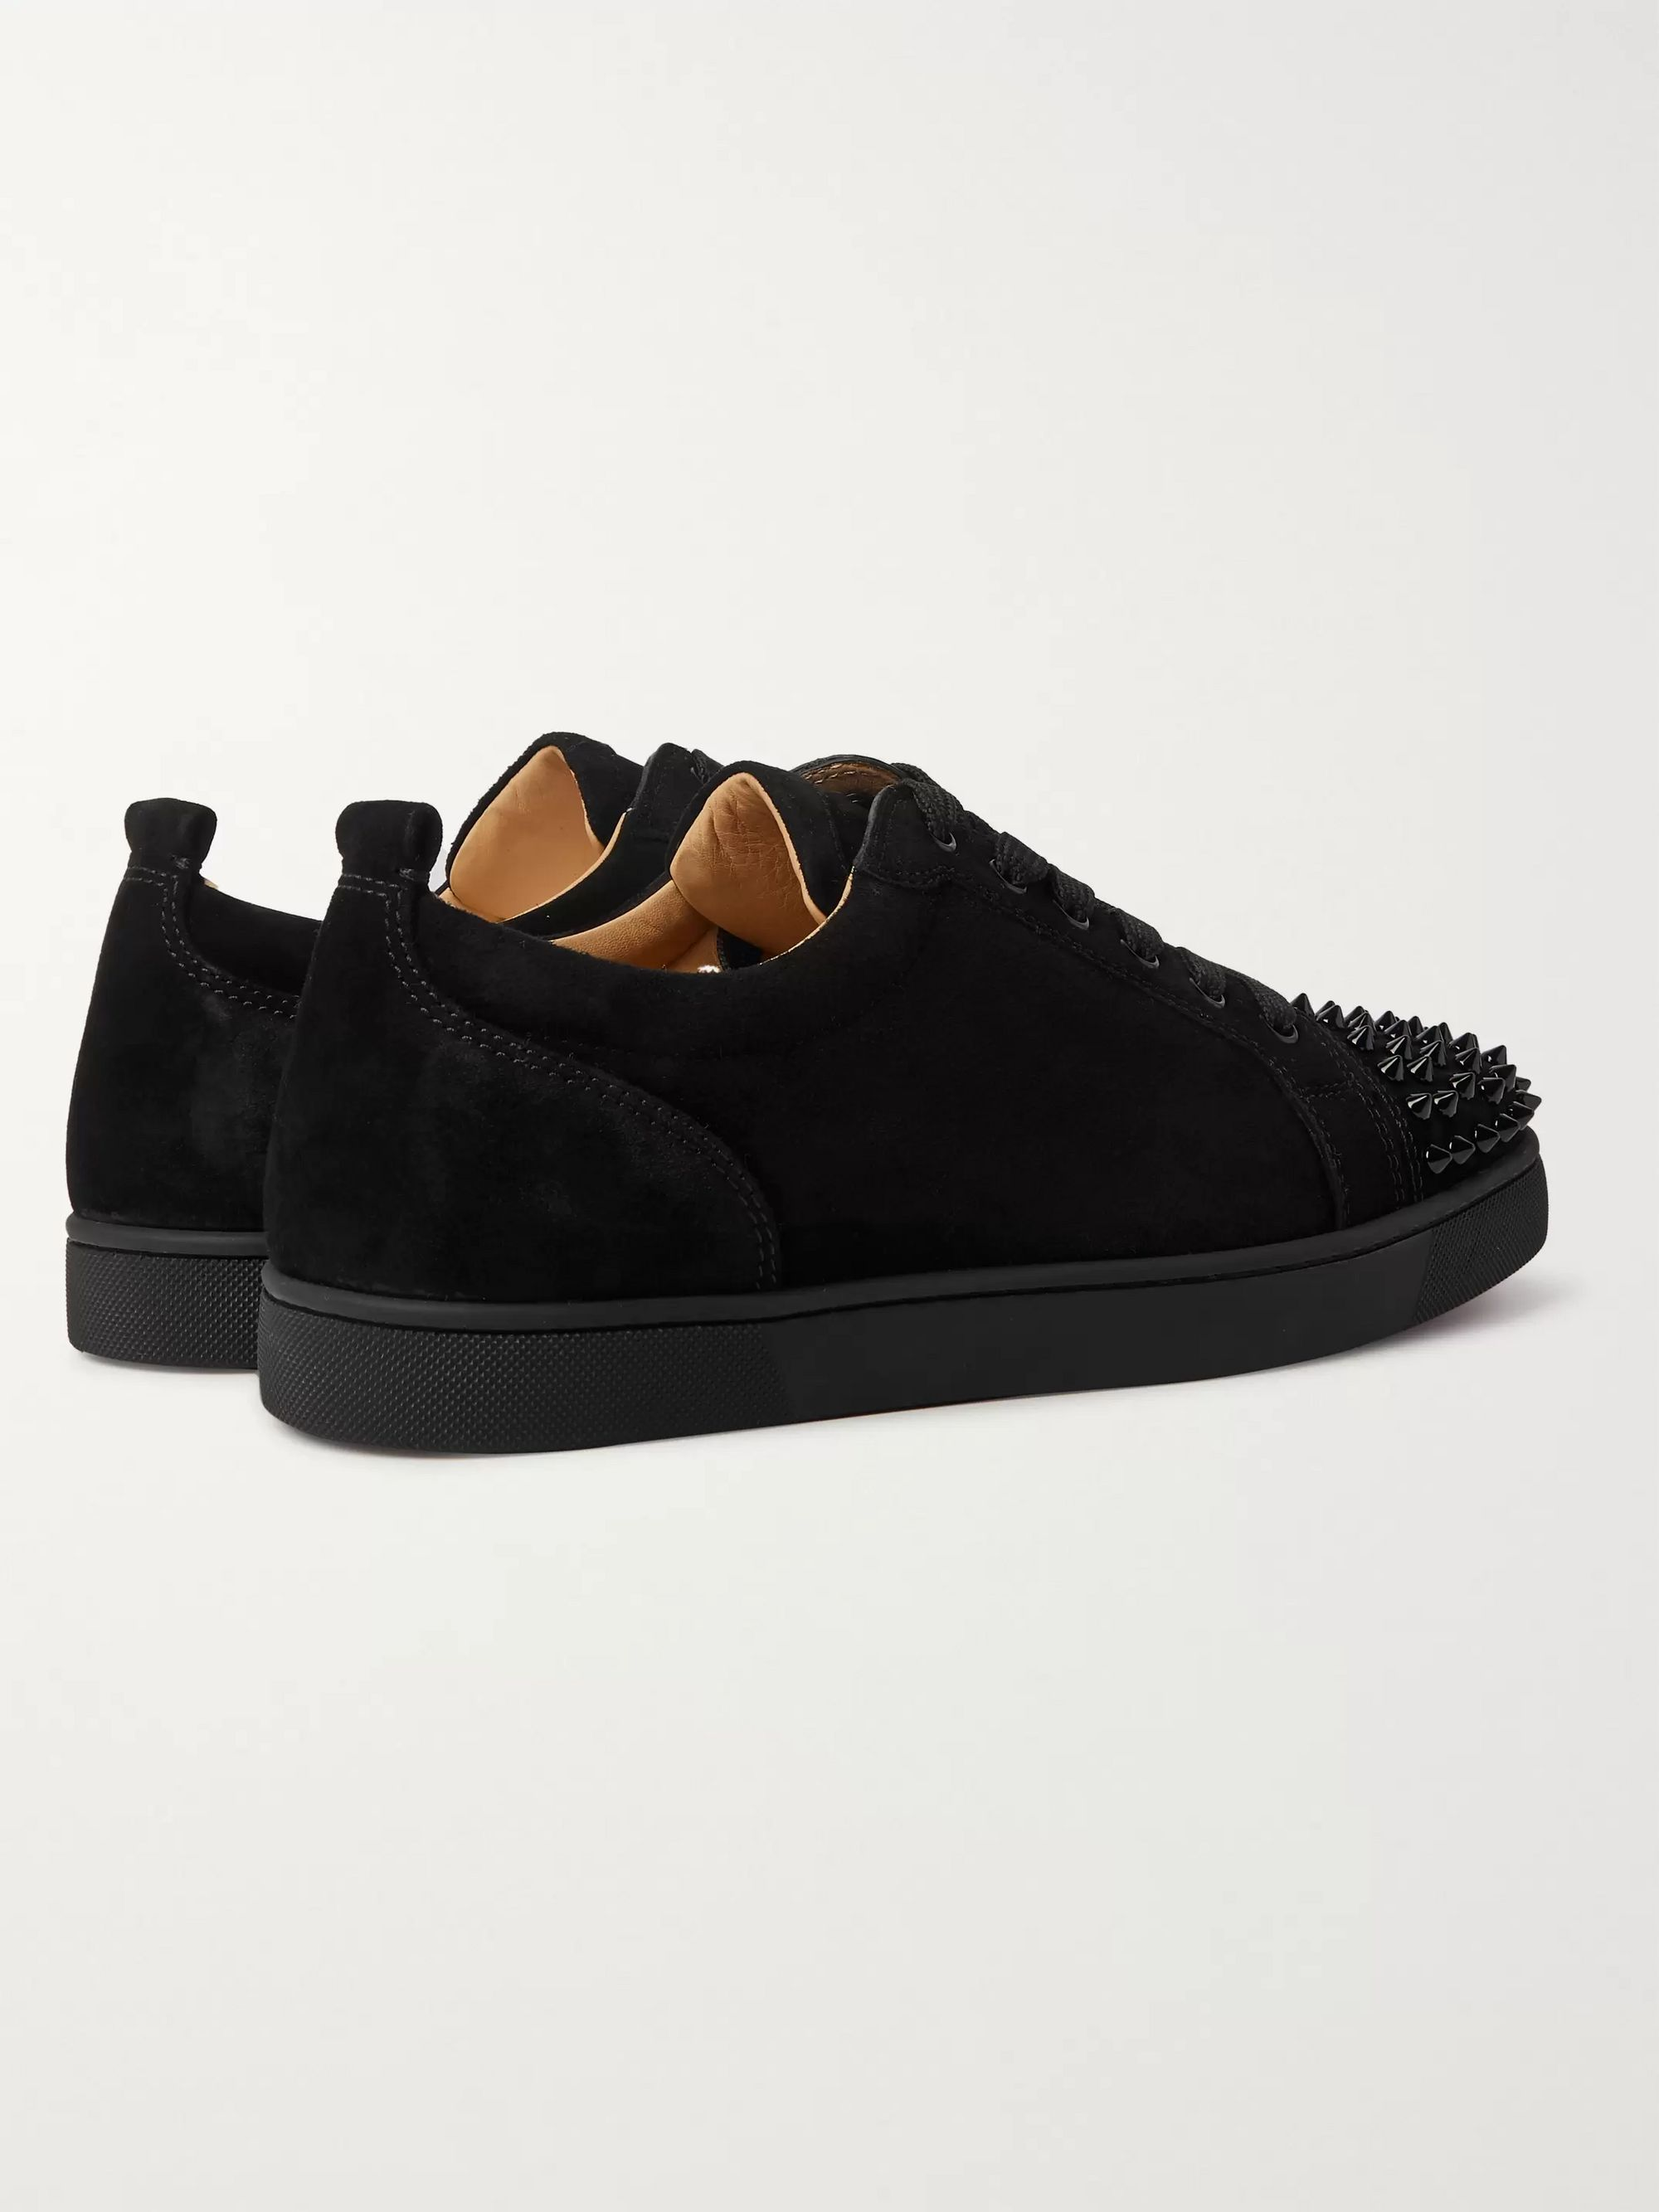 Christian Louboutin Louis Junior Studded Suede Sneakers